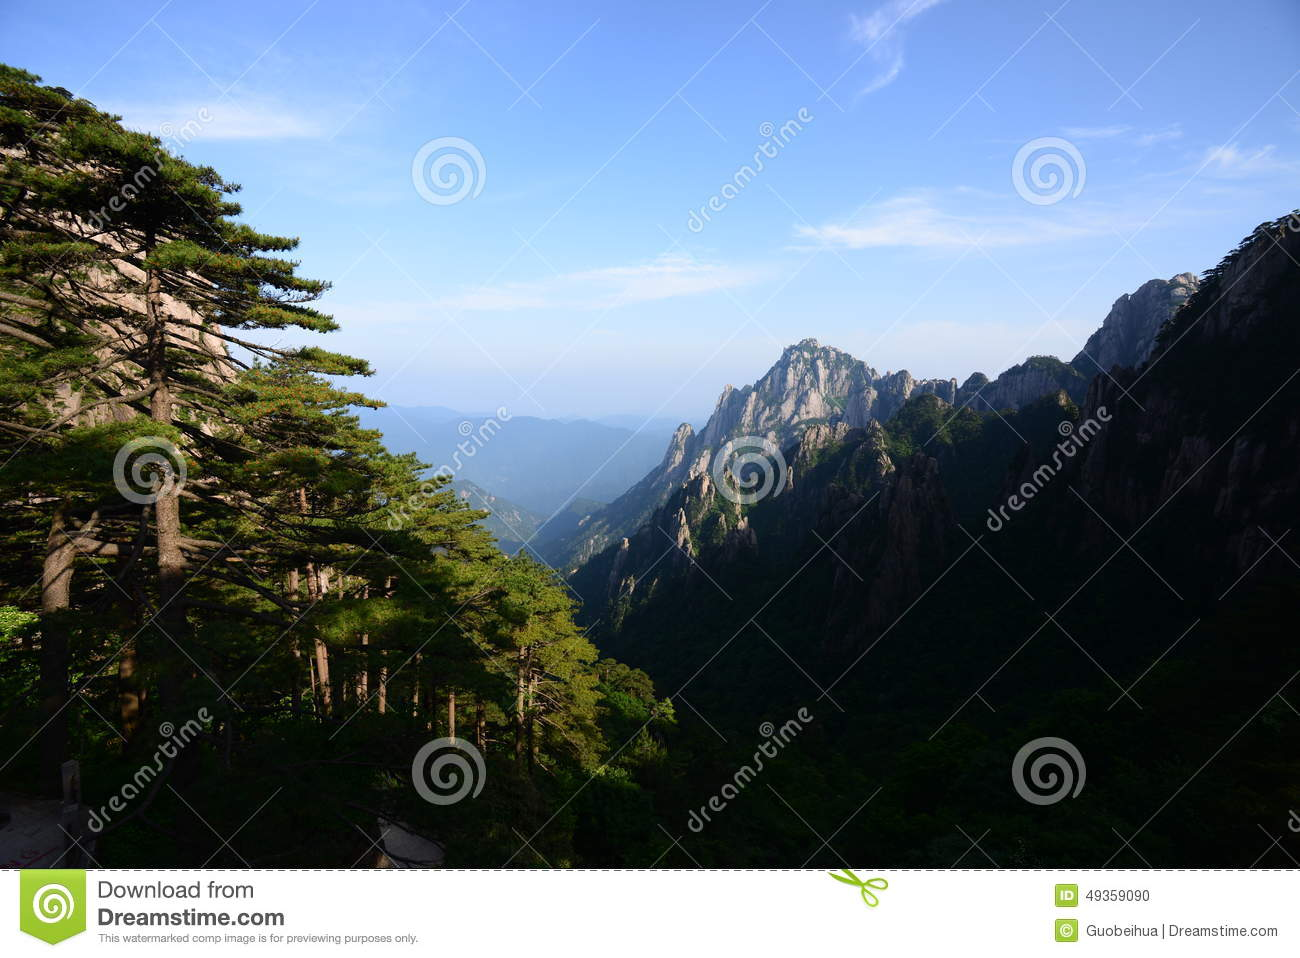 Huangshan, a mountain range in South Eastern China.